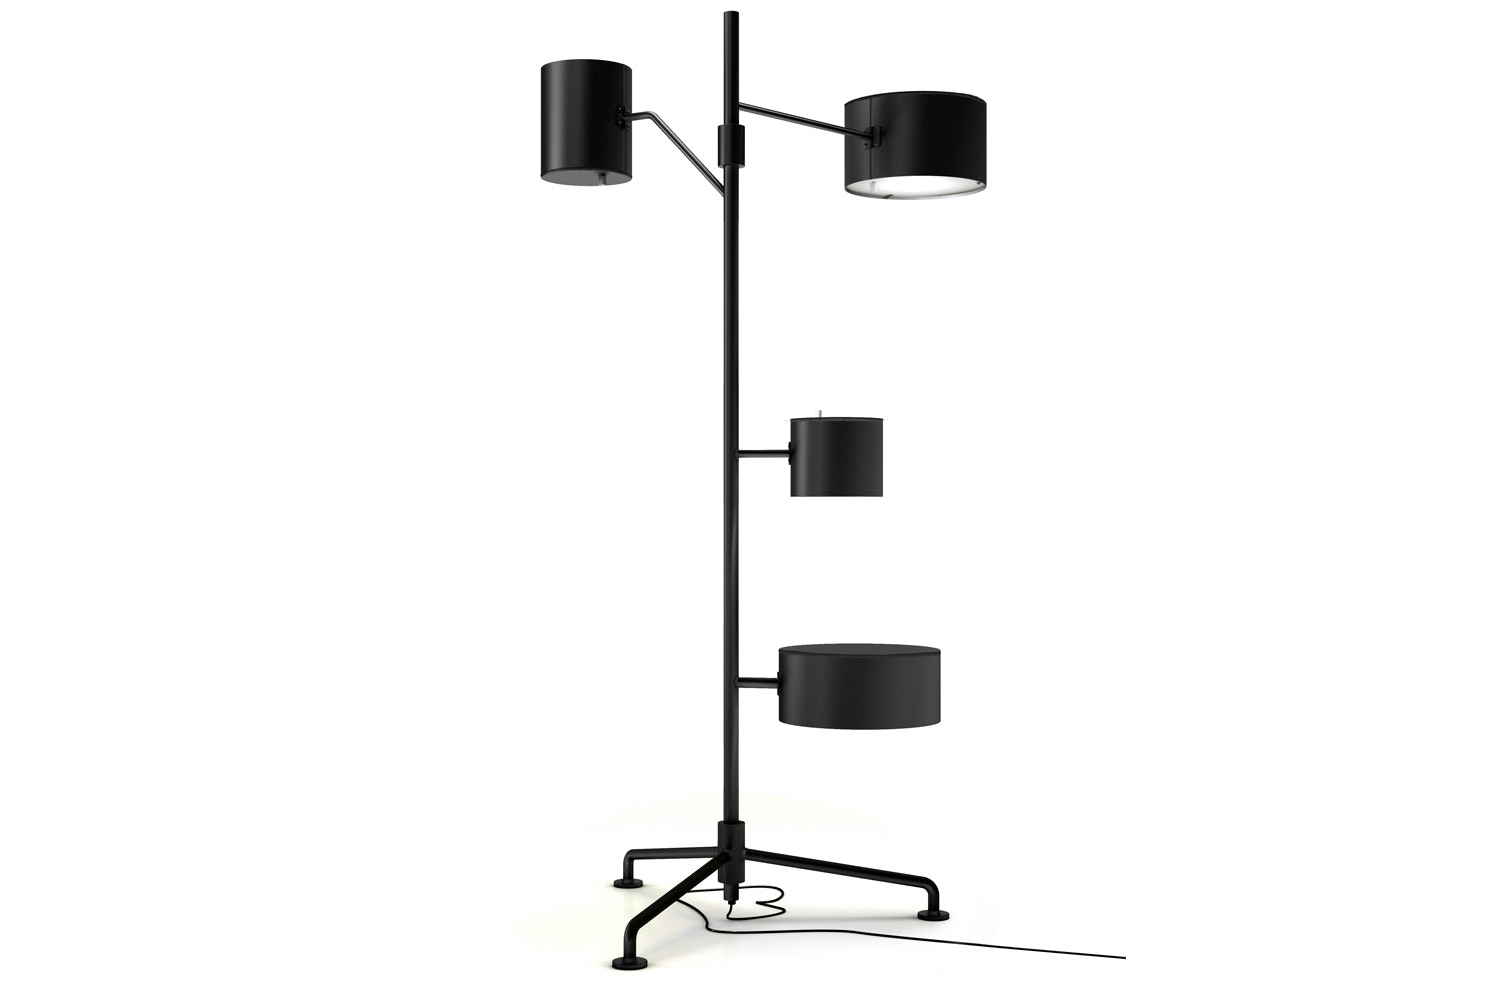 Statistocrat Floor Lamp by Atelier Van Lieshout for Moooi